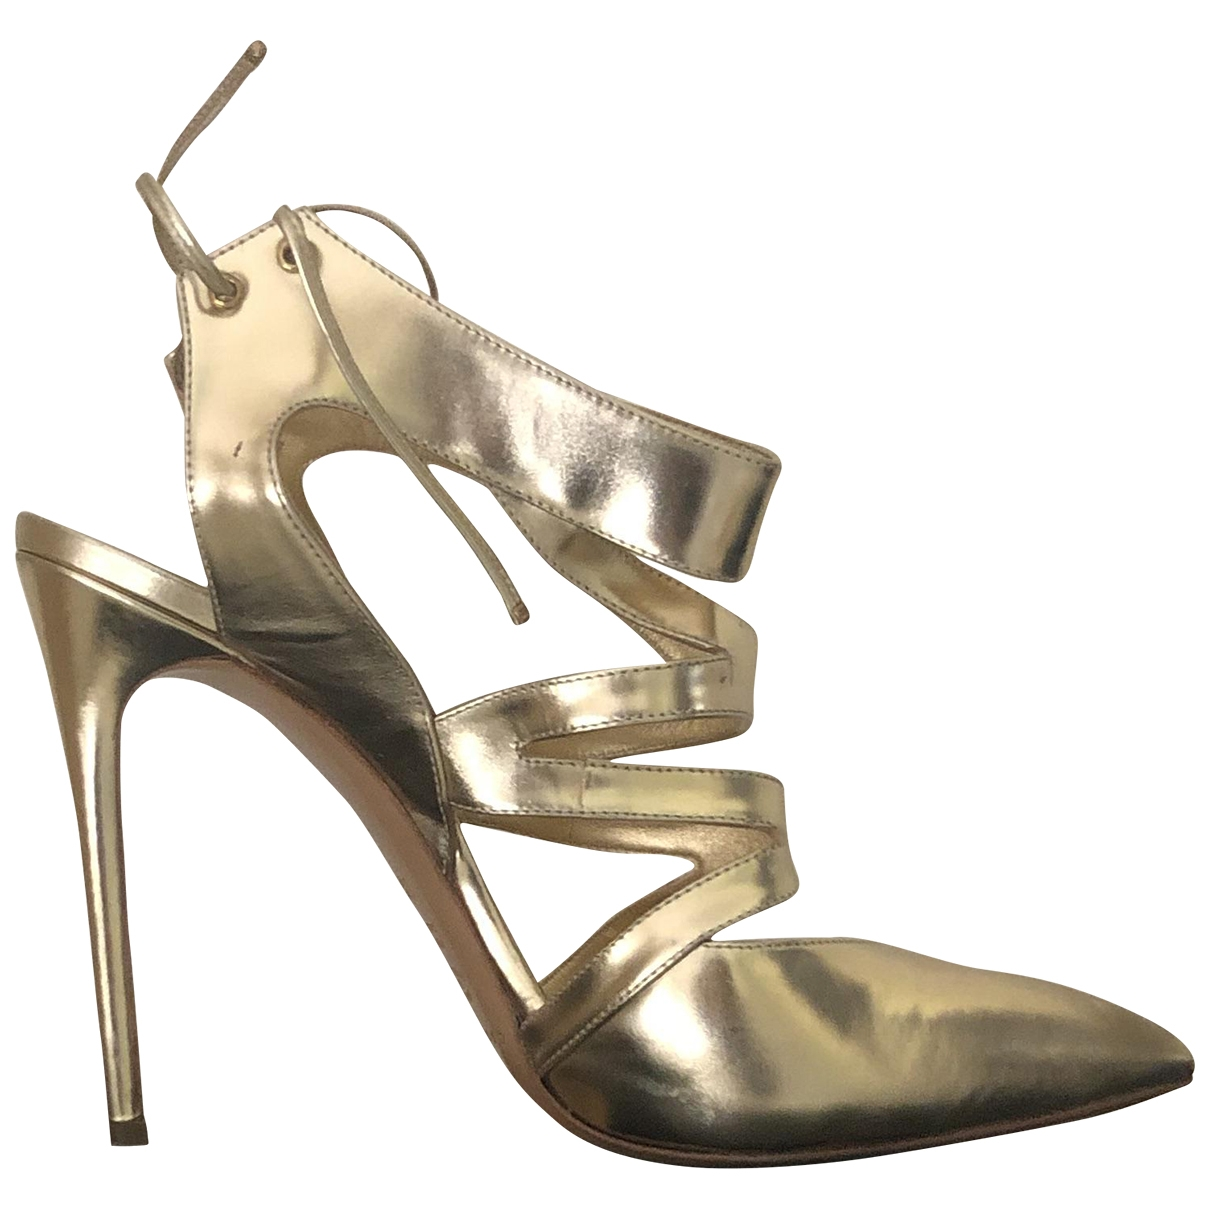 Casadei \N Gold Leather Heels for Women 38.5 EU